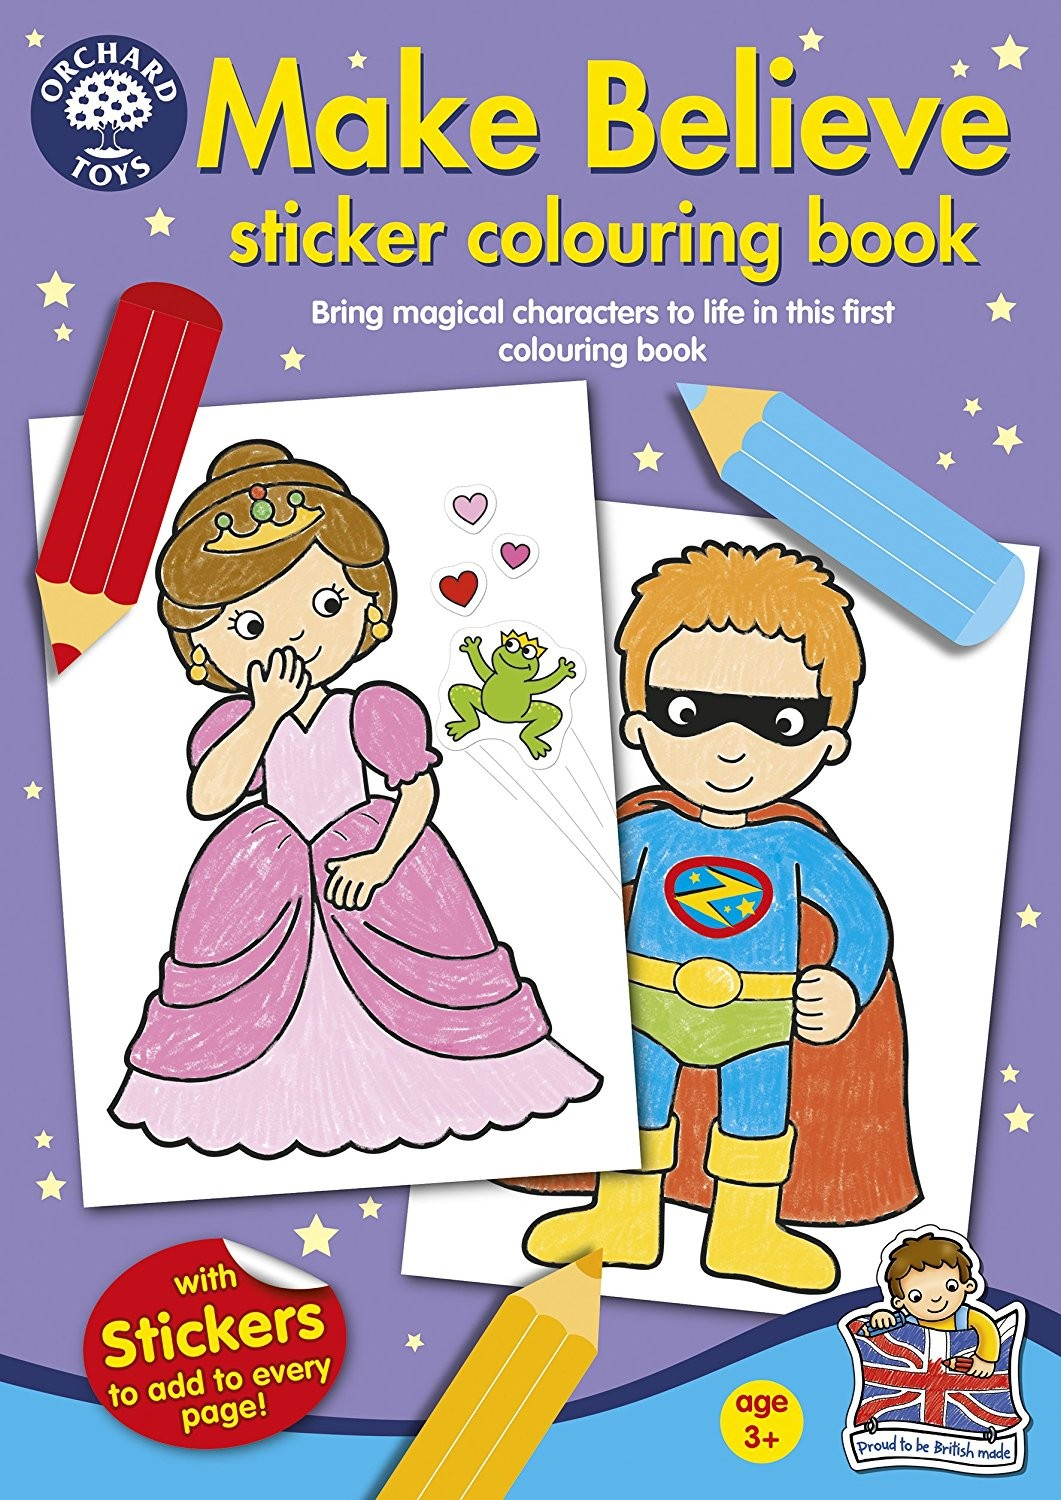 Make Believe Sticker Colouring Book by Orchard Toys